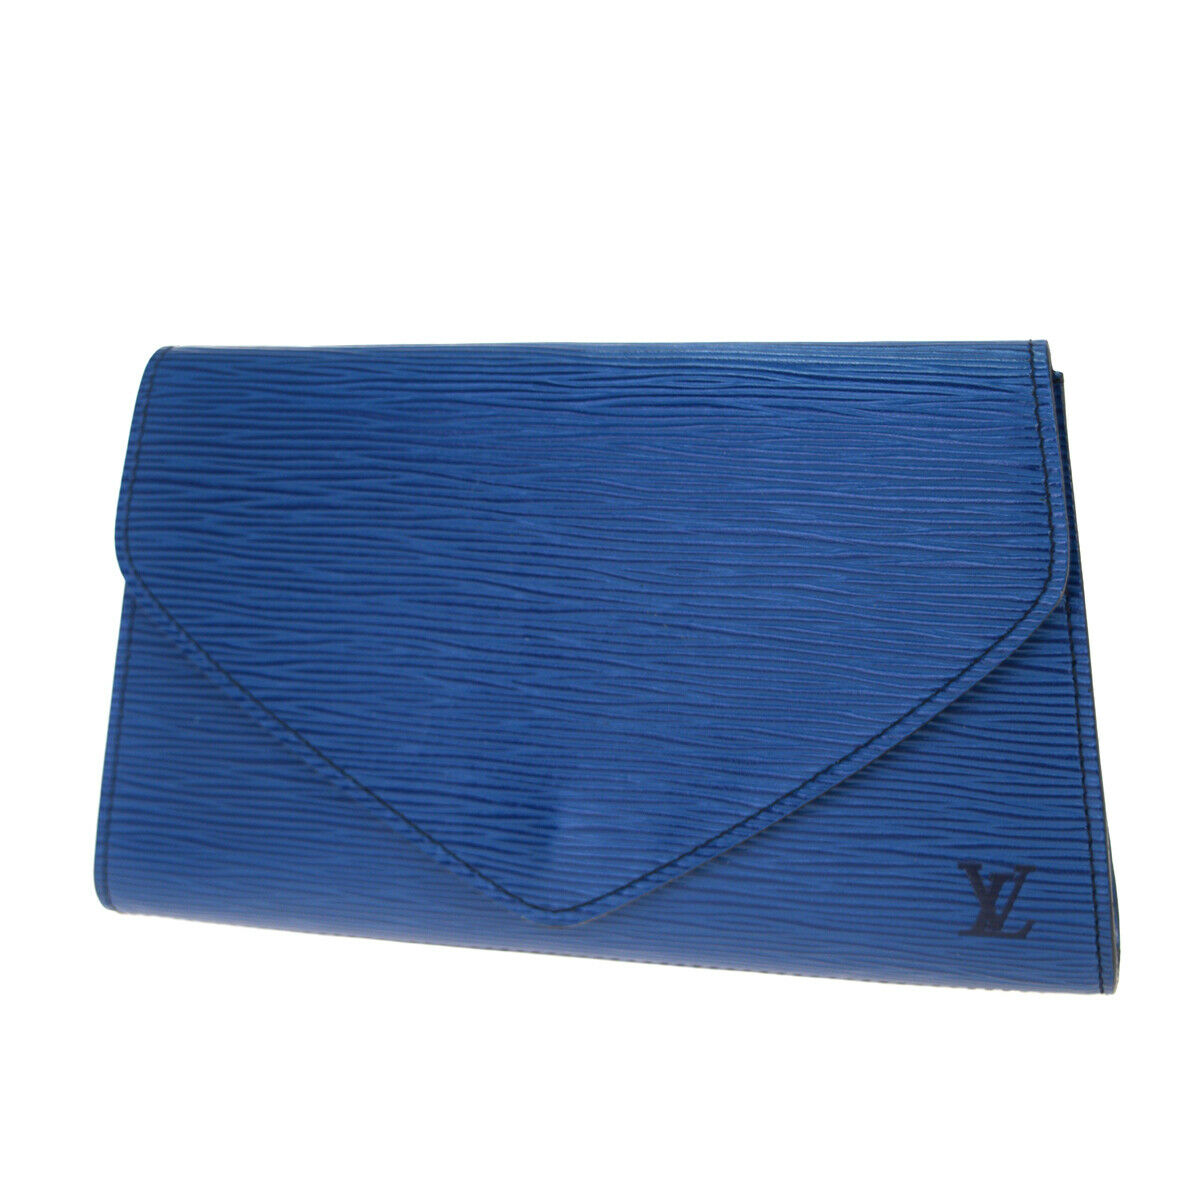 Auth Louis Vuitton Epi Art Deco M52635 Clutch Toledo-Blau 63GC138 - 351.00,Kaufpreis 351,datum 30.07.2020 12:12:37,Website